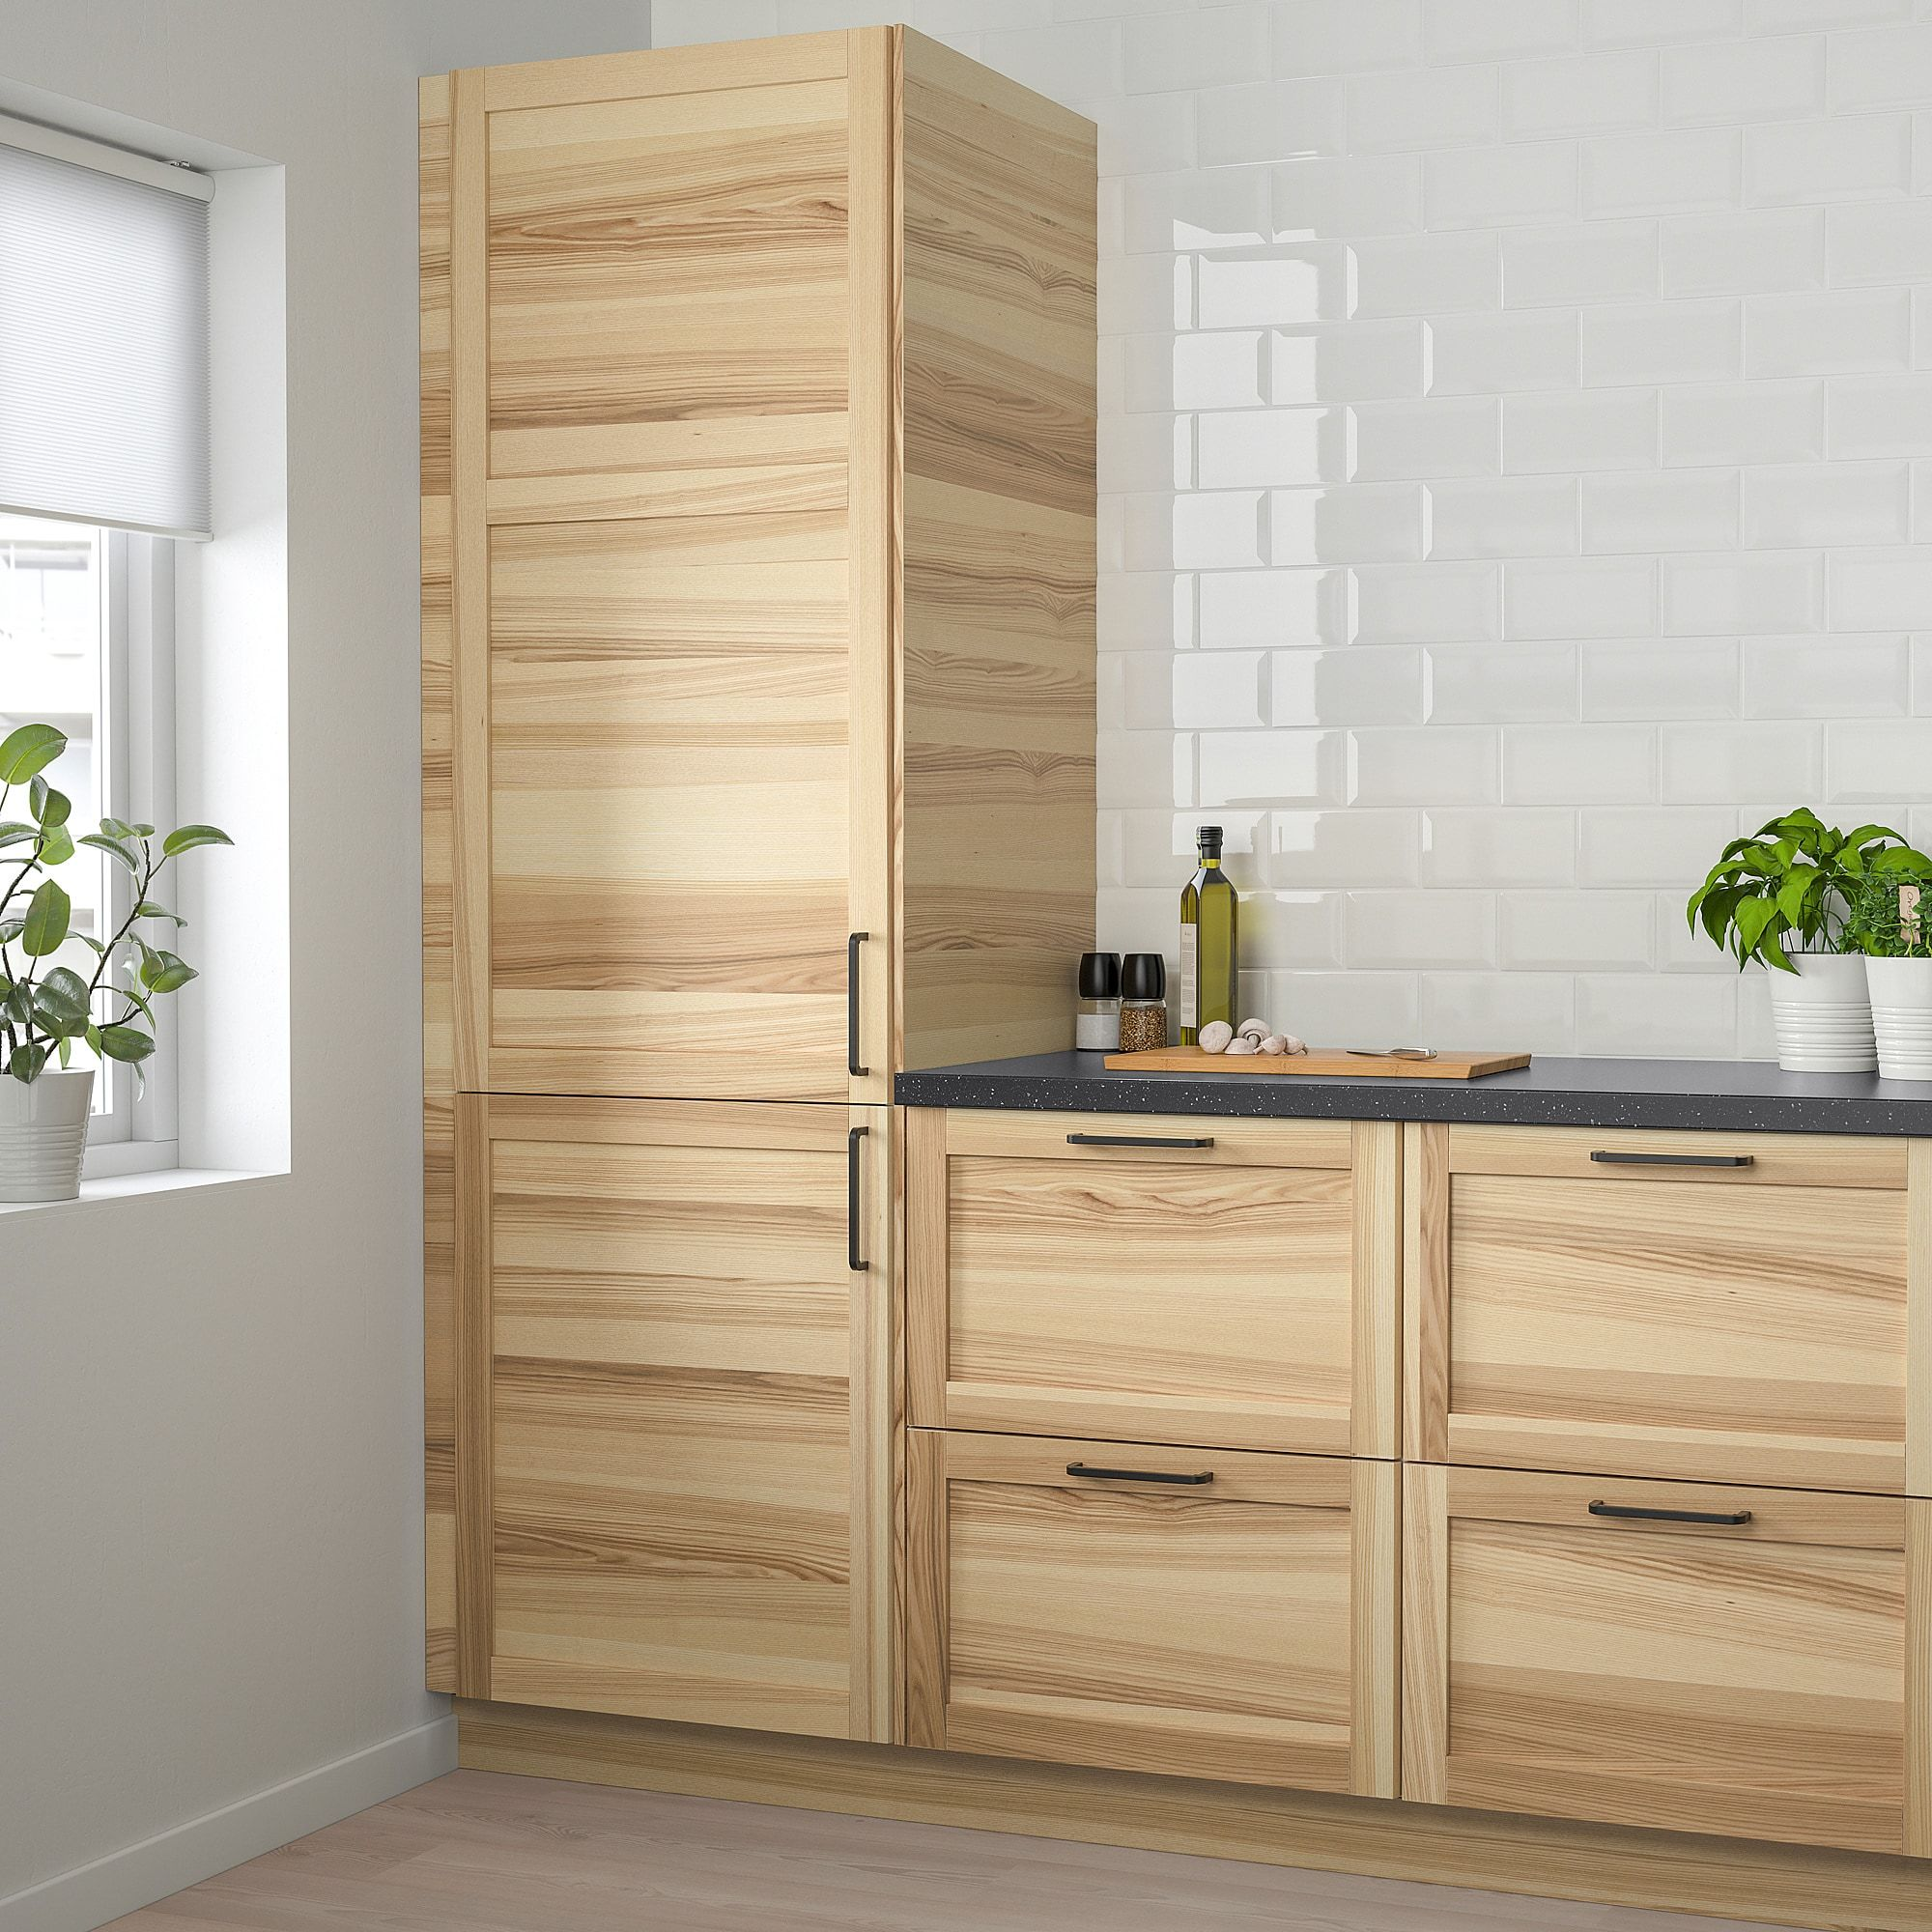 Torhamn Door Natural Ash Ikea In 2020 Kitchen Cupboard Doors Kitchen Design Open Kitchen And Bath Remodeling